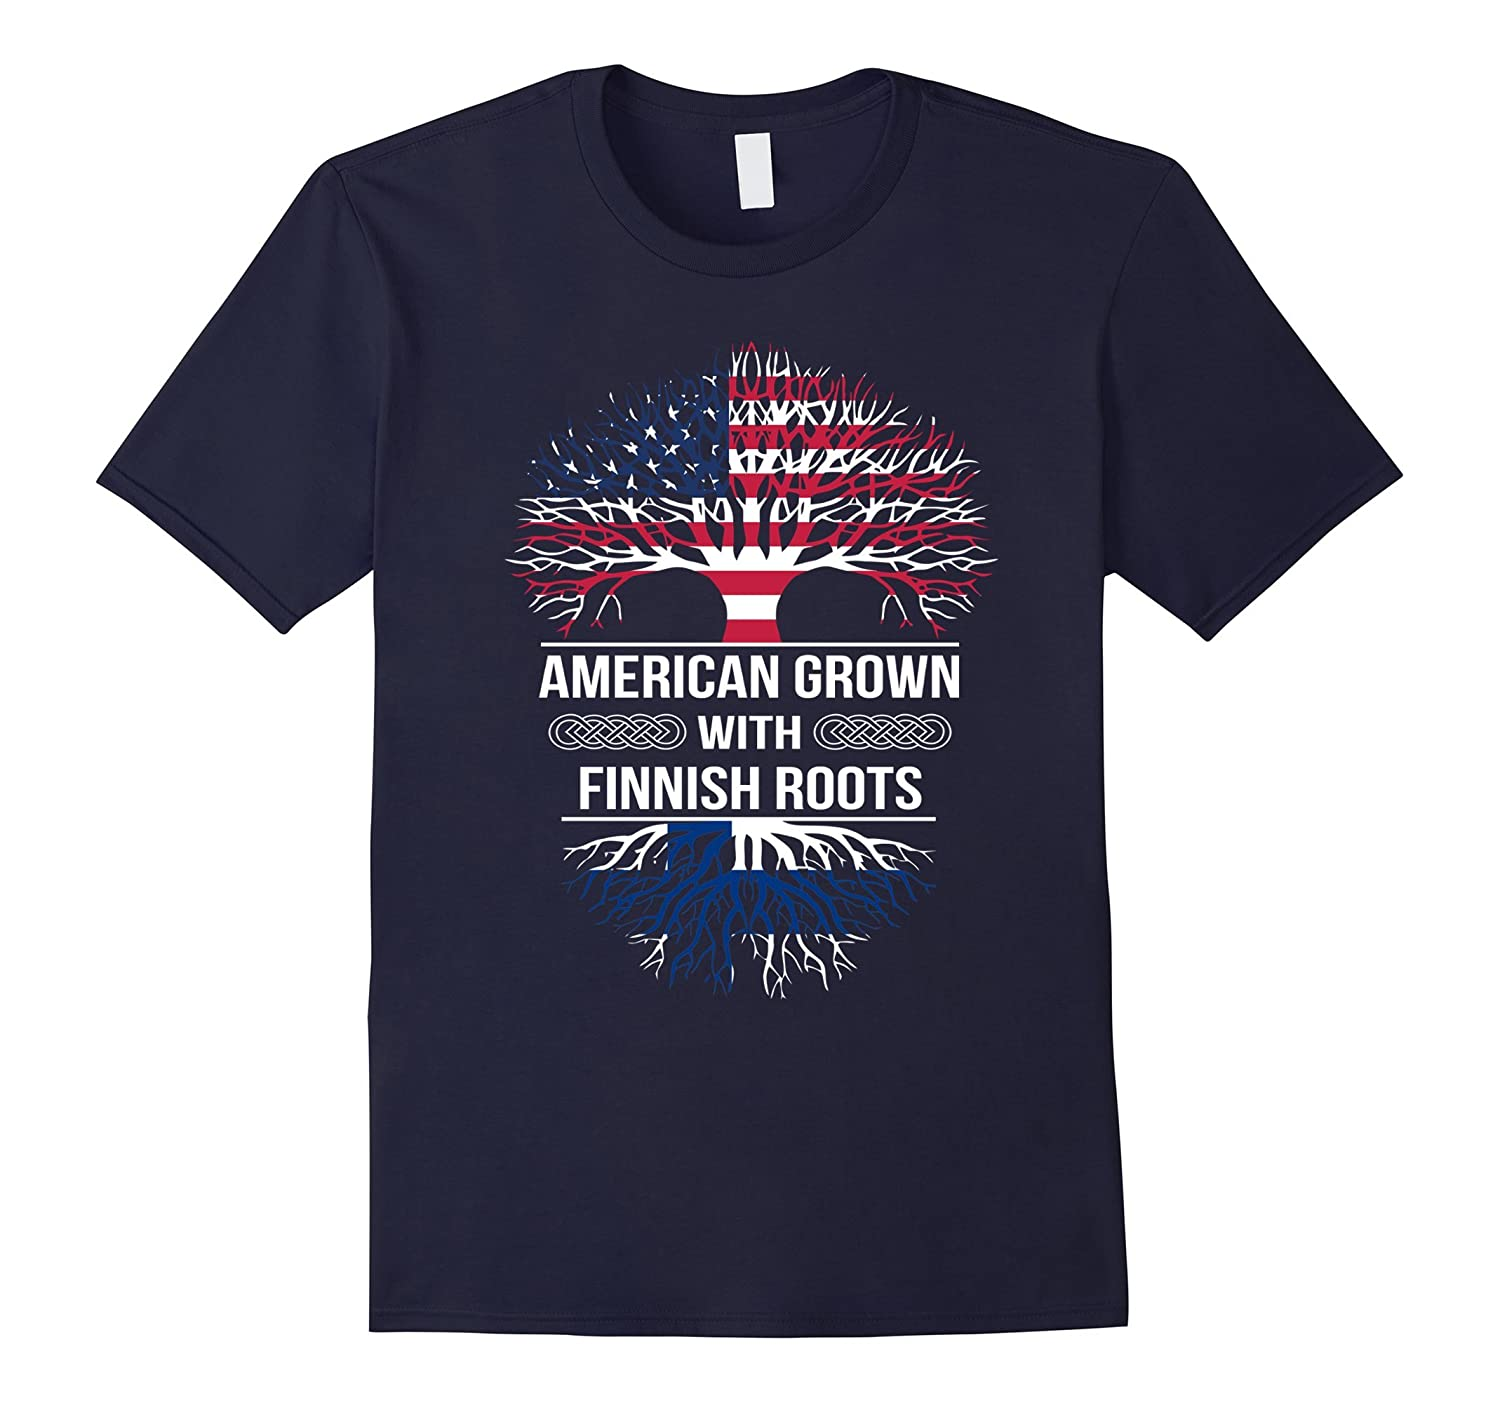 American Grown with Finnish Roots tshirt-Yolotee